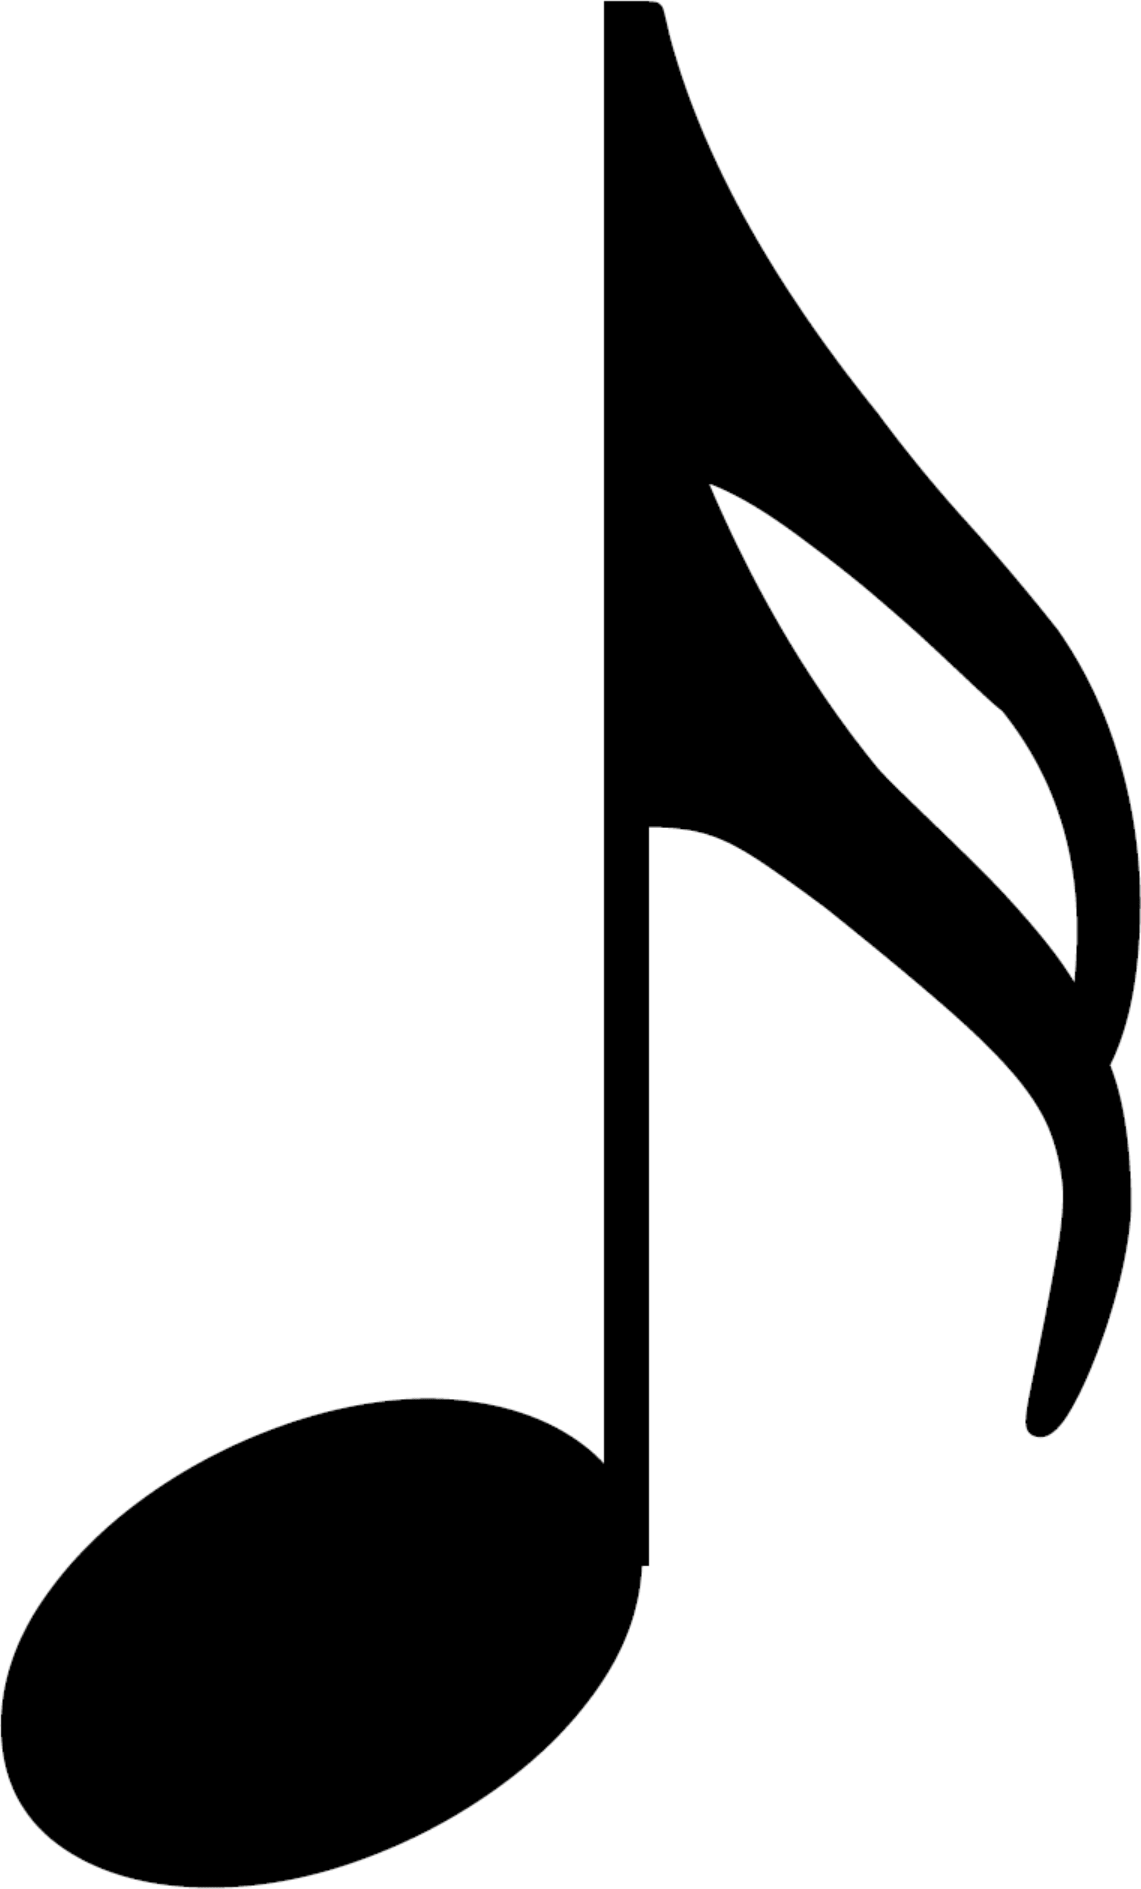 An HD sixteenth note, also called a semiquaver; a musical symbol and musical note value.